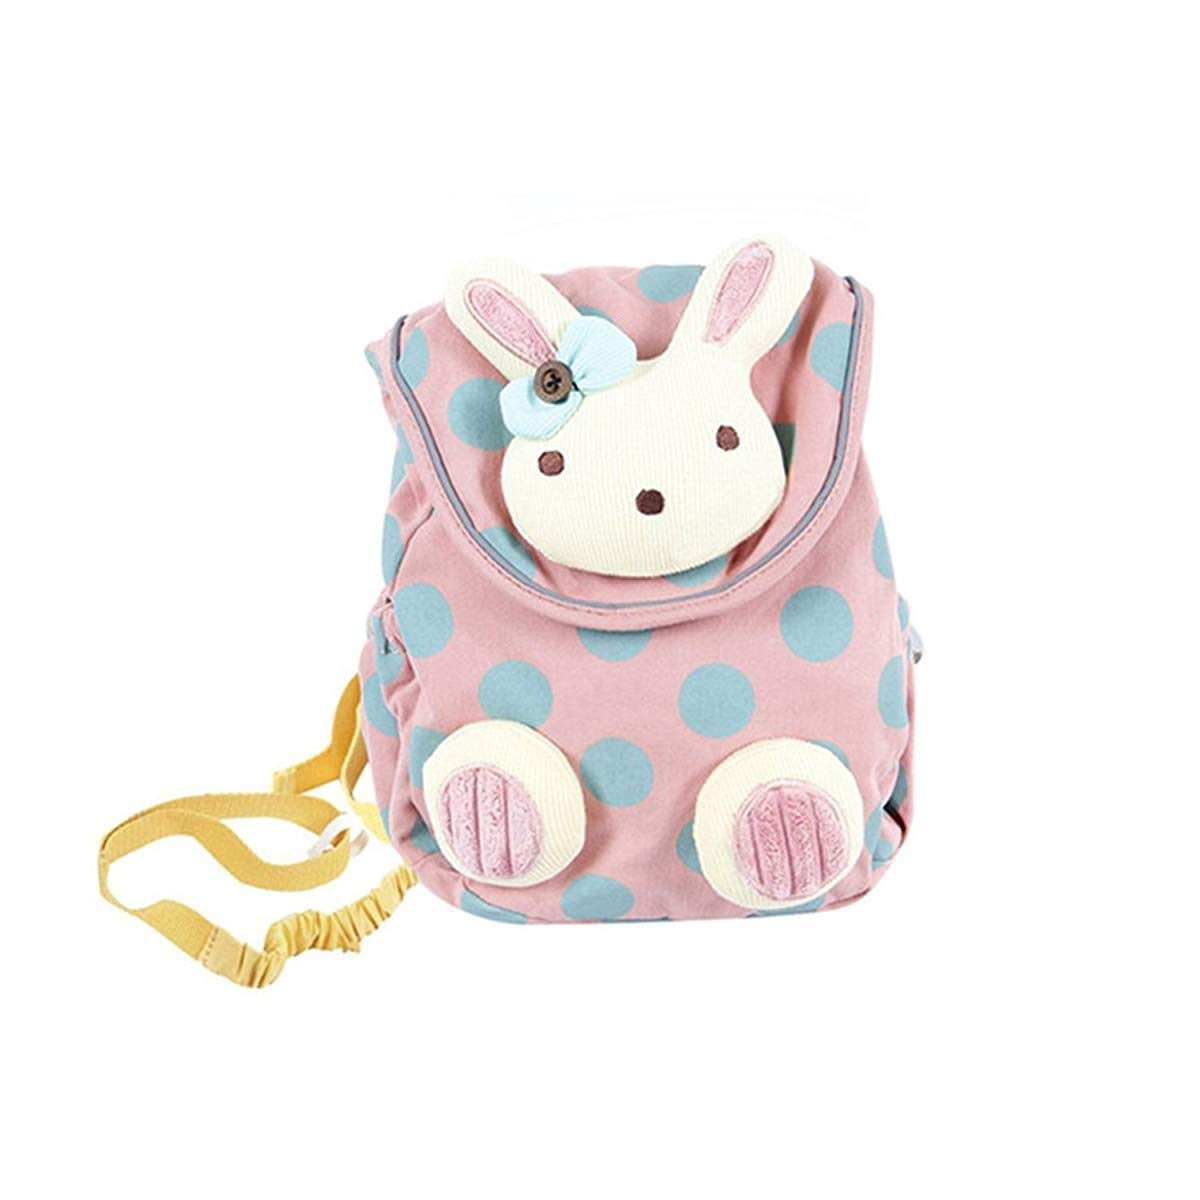 POPINCY Pink Toddler Backpack, Cute Stuffed Rabbit Bag for Girls over 1 Year Old, Safe Kid Bag with Anti-Lose Leash, Toddler Backpack with Pockets/Toddler Backpack Leash